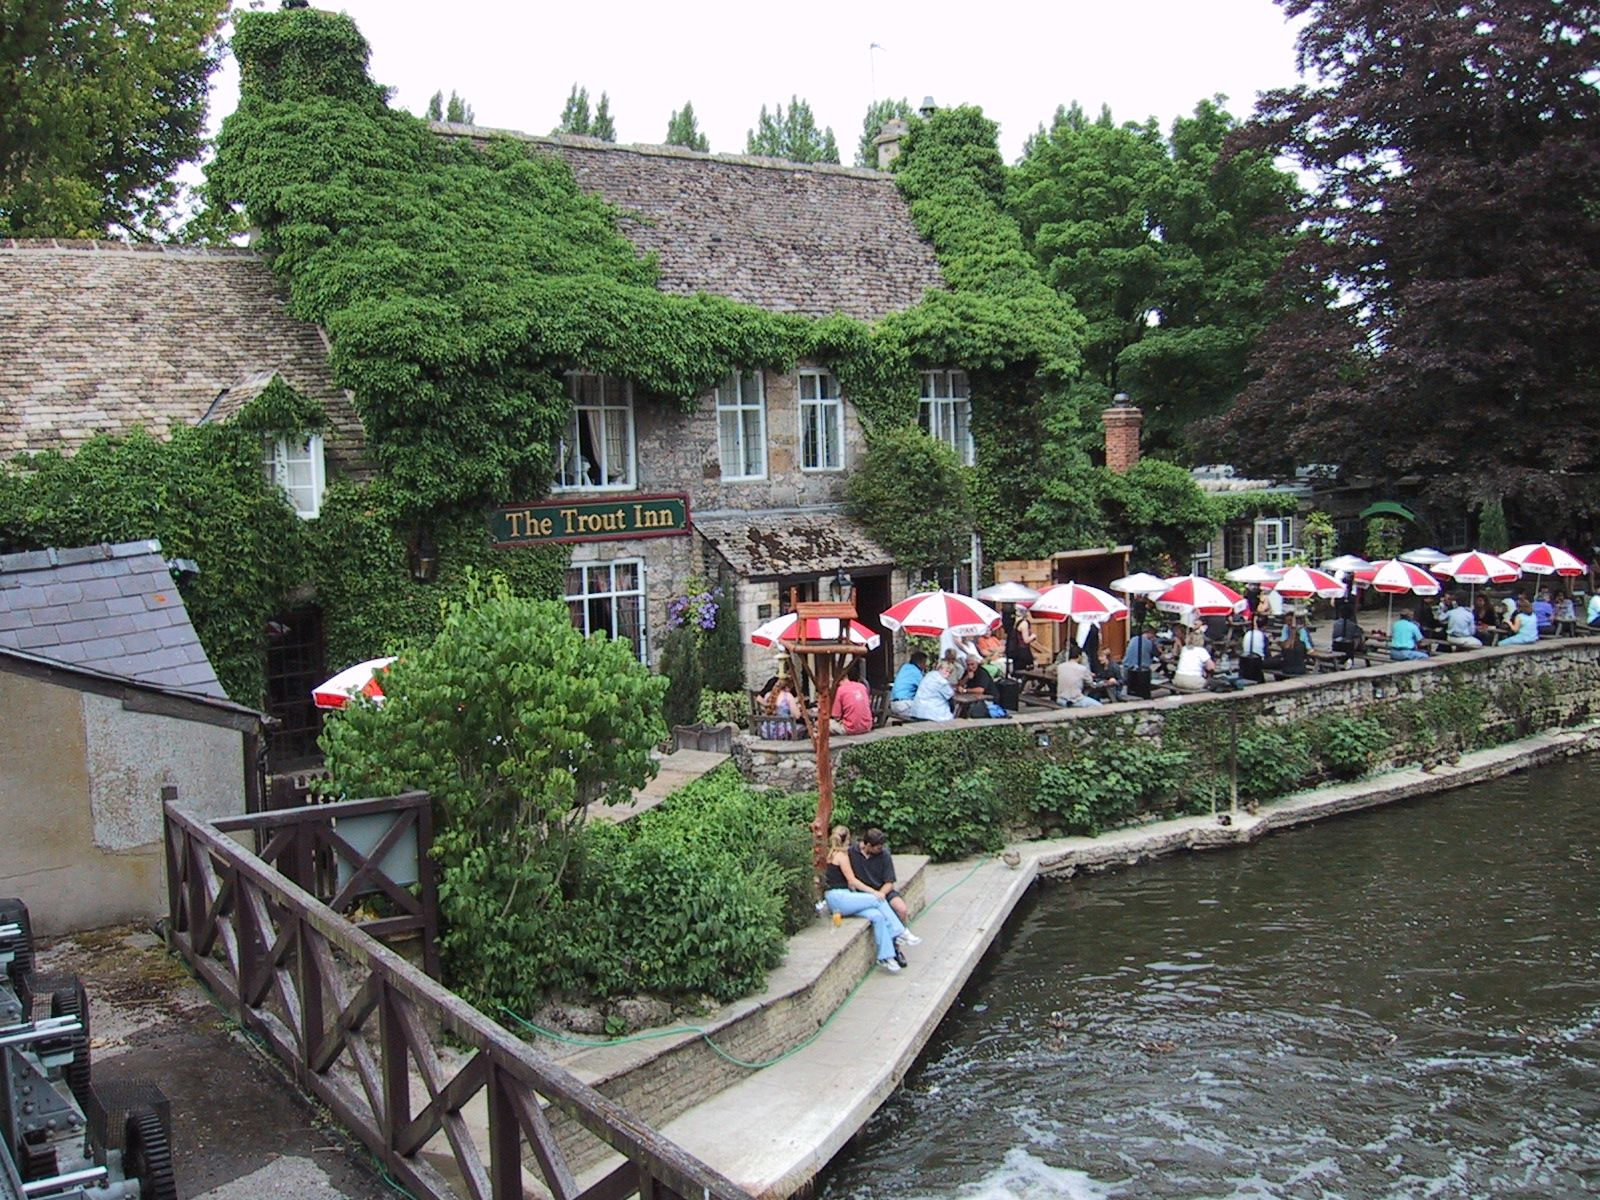 In The Trout Inn in Oxford drinkt Inspector Morse regelmatig een goede pint. Bijvoorbeeld in de aflevering: The Wolvercote Tongue. #film #locations